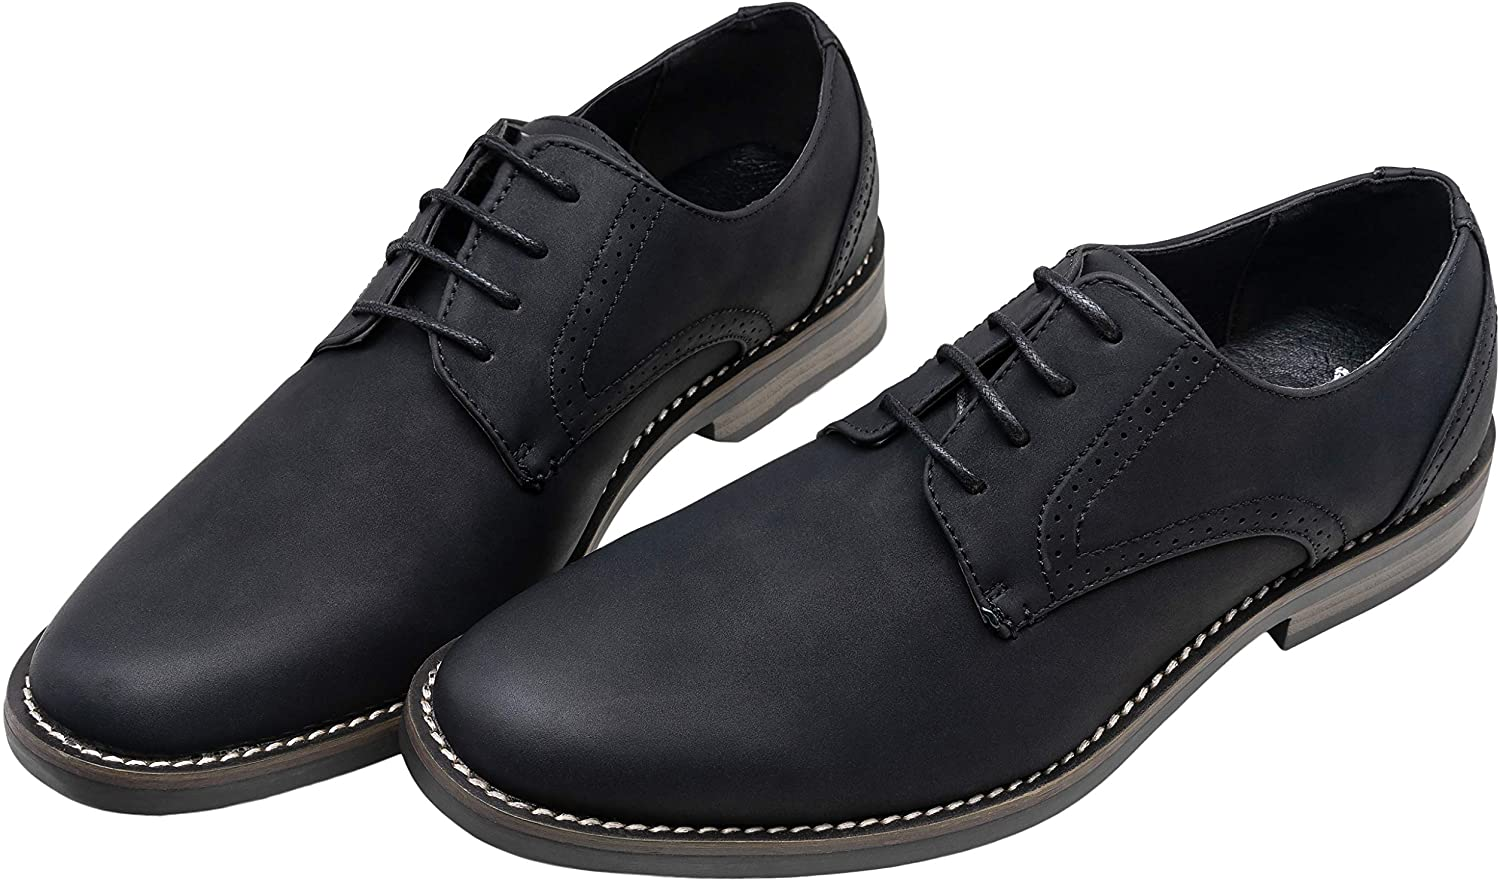 Mens Dress Shoes Retro Business Casual Oxfords | Jousen